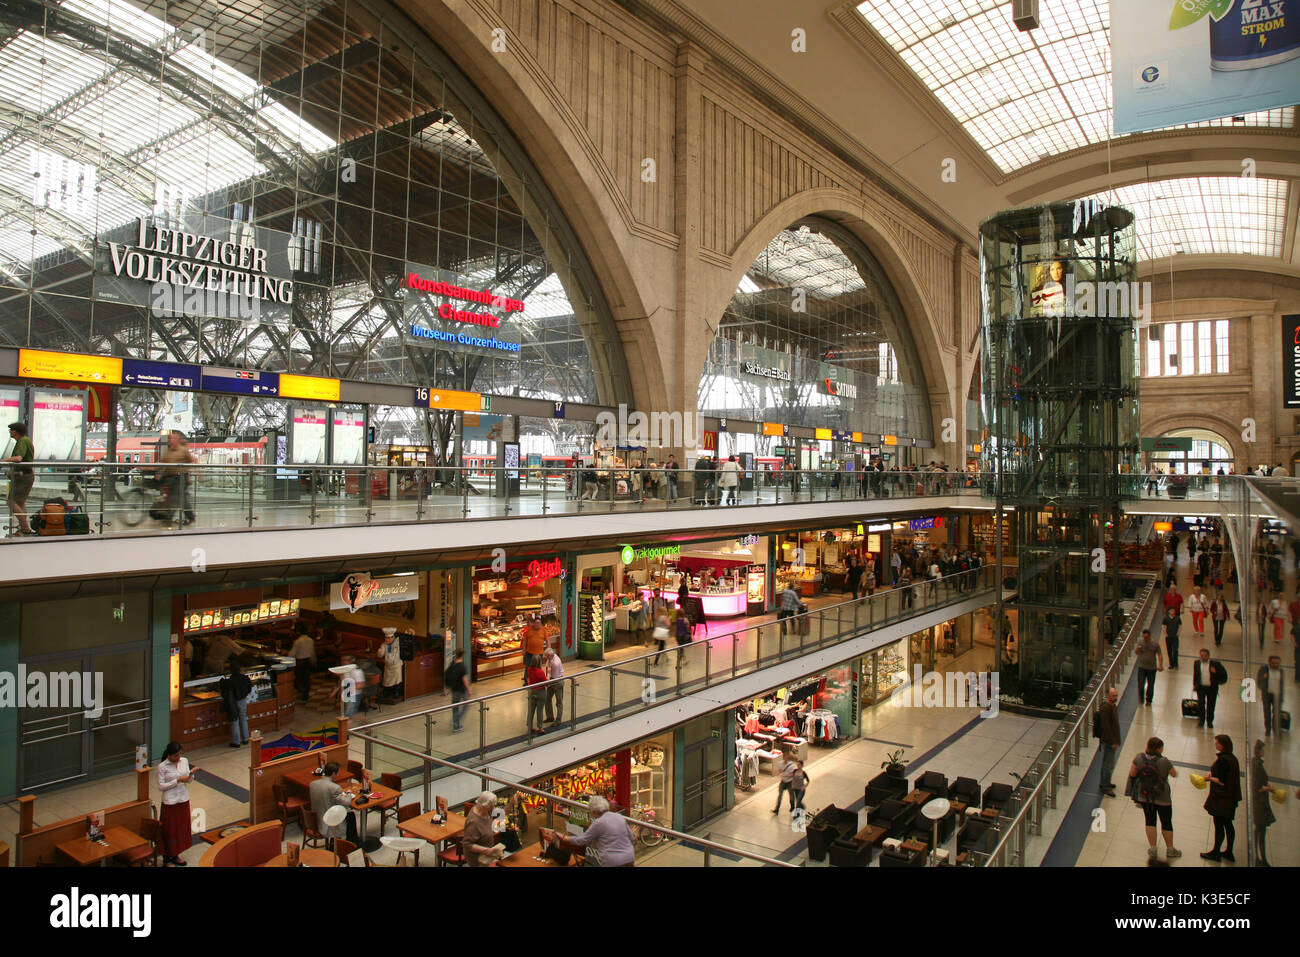 Germany, Saxony, Leipzig, central station promenades, inside - Stock Image